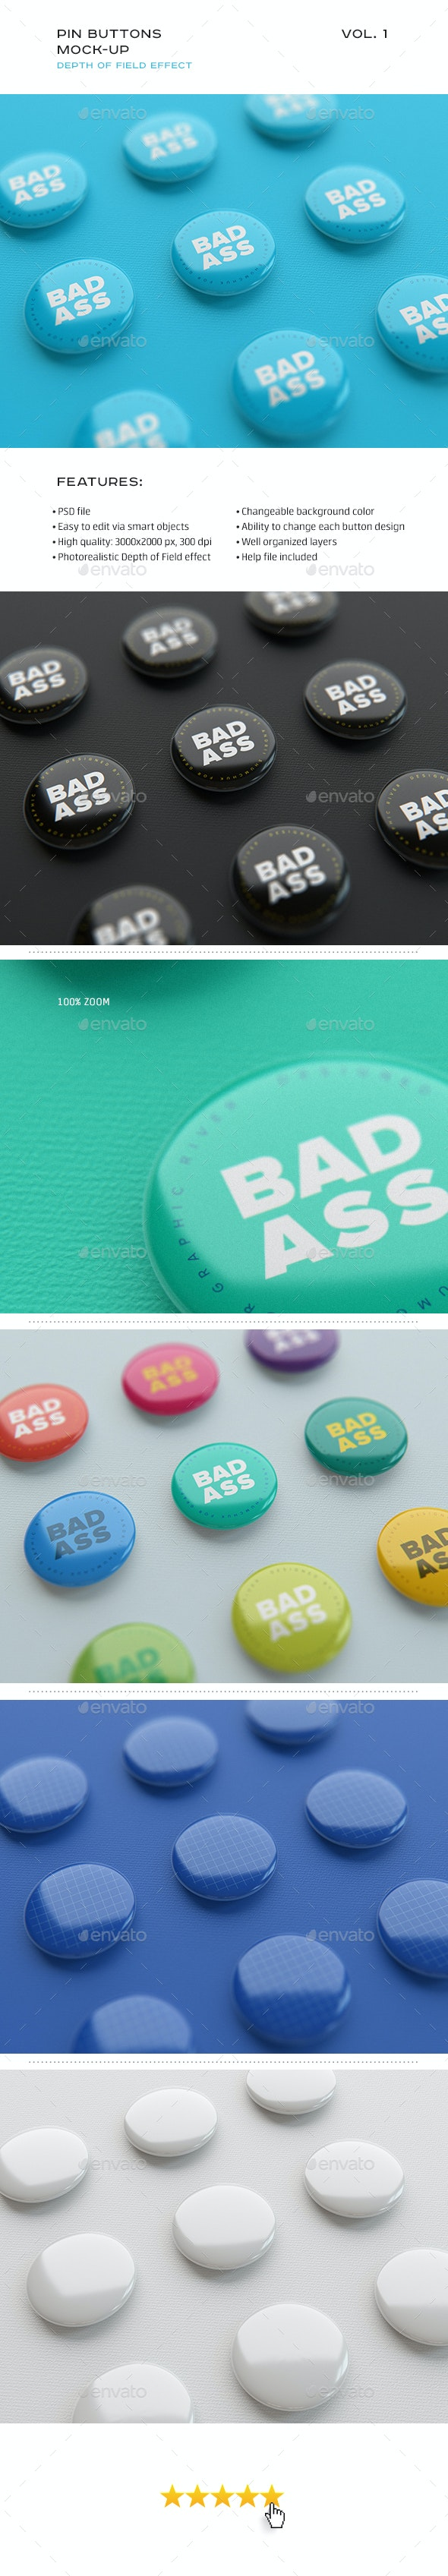 Pin Buttons Mock-up vol.1 - Miscellaneous Print